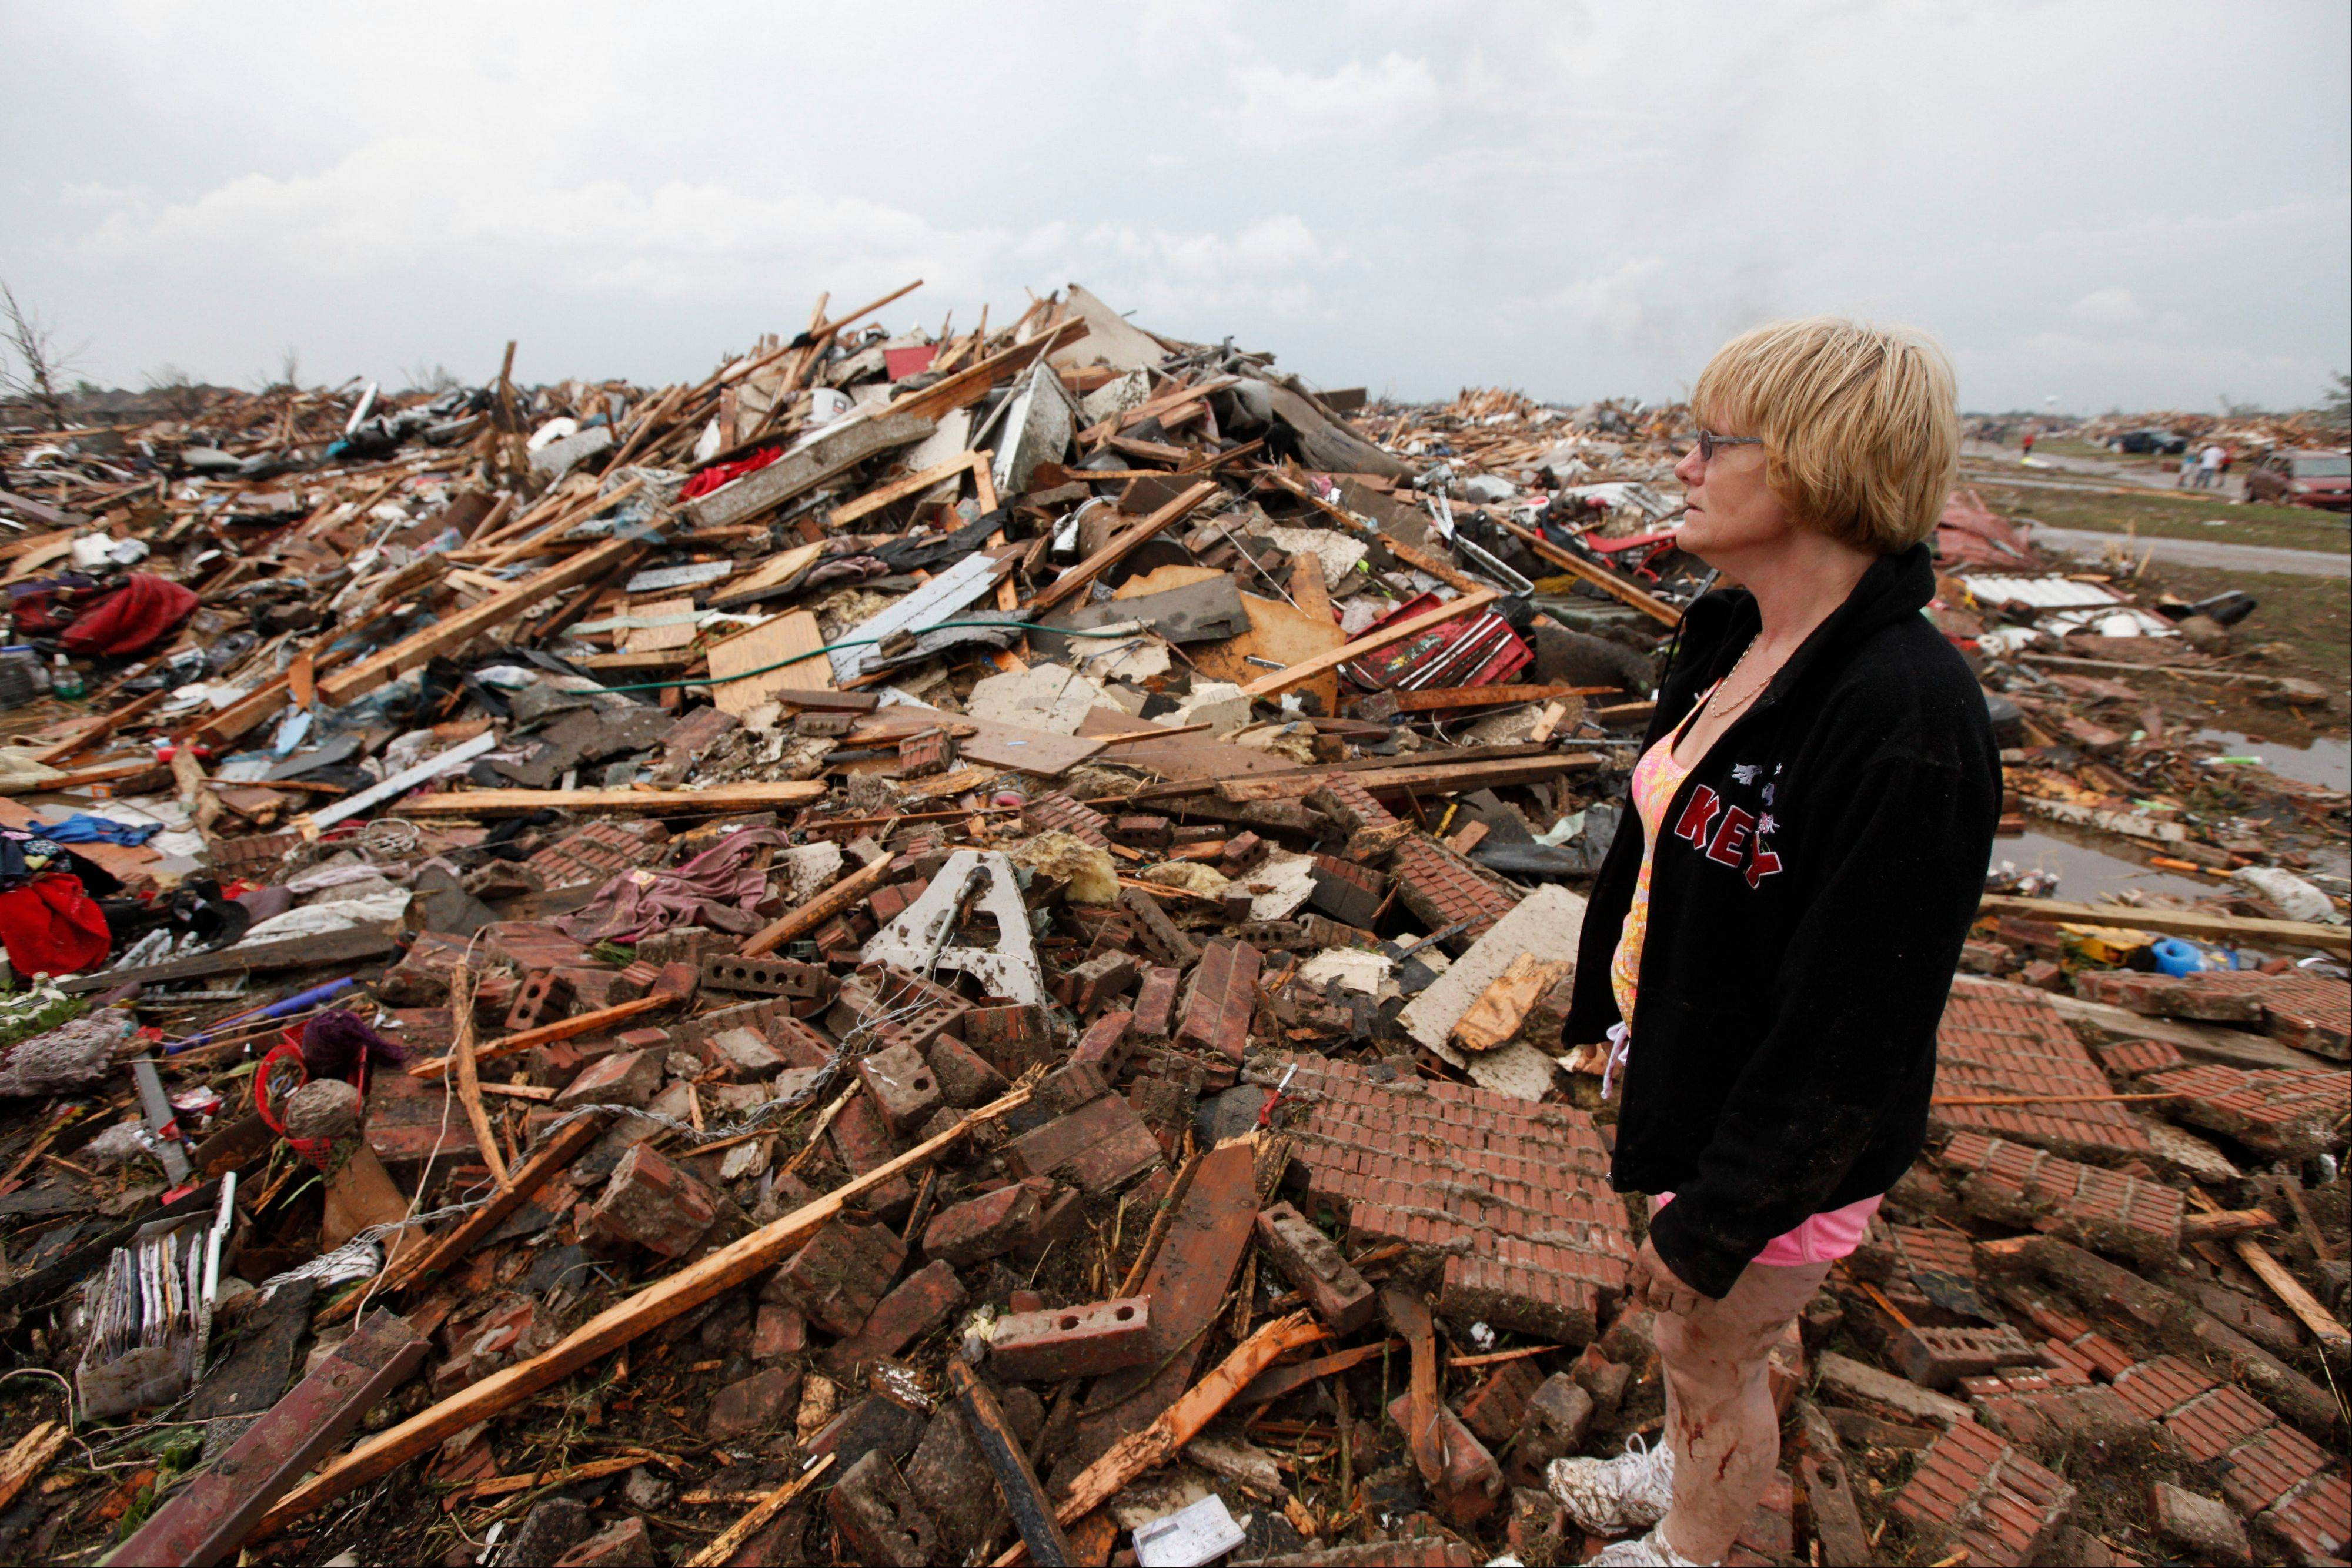 Resident Kim Schwab looks over her destroyed home in south Oklahoma City, Monday, May 20, 2013. A monstrous tornado roared through the Oklahoma City suburbs, flattening entire neighborhoods with winds up to 200 mph, setting buildings on fire and landing a direct blow on an elementary school.